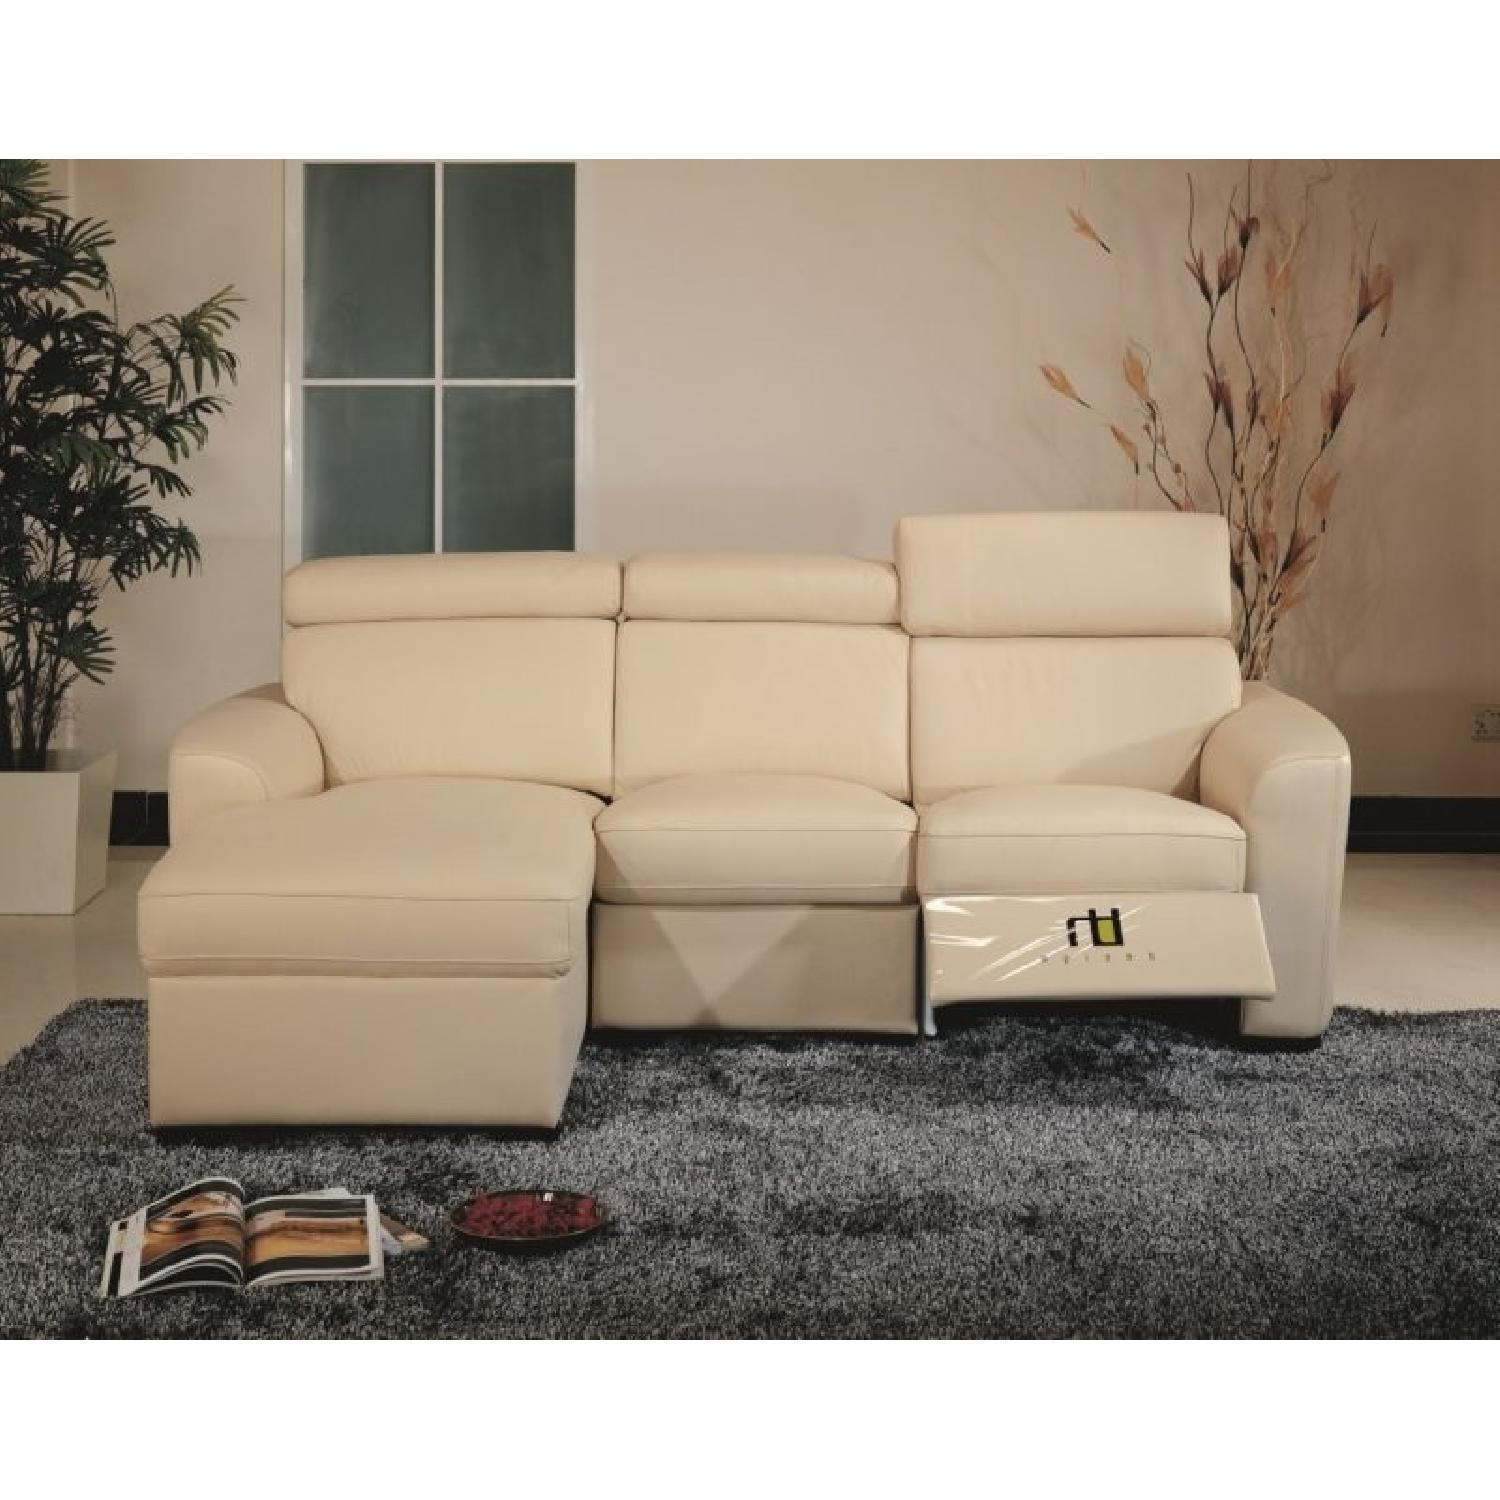 Apartment Size Sectional in Beige Top Grain Leather w/ Matching Faux  Leather w/ a Built-In Recliner & Adjustable Headrests